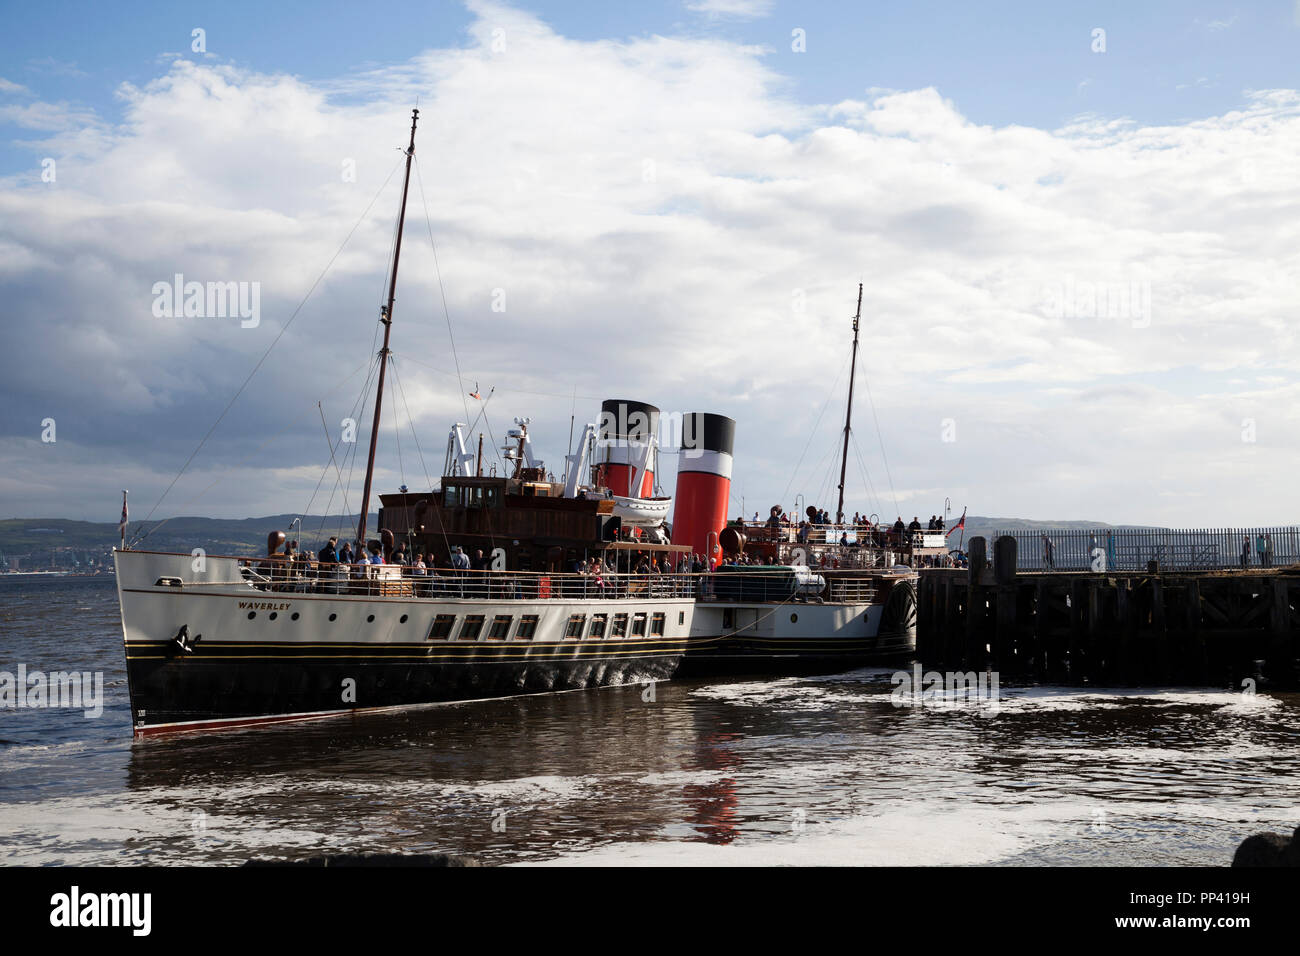 The last sea-going paddle steamer in the world. The Waverley at Helensburgh Pier on the River Clyde, Argyll, Scotland Stock Photo